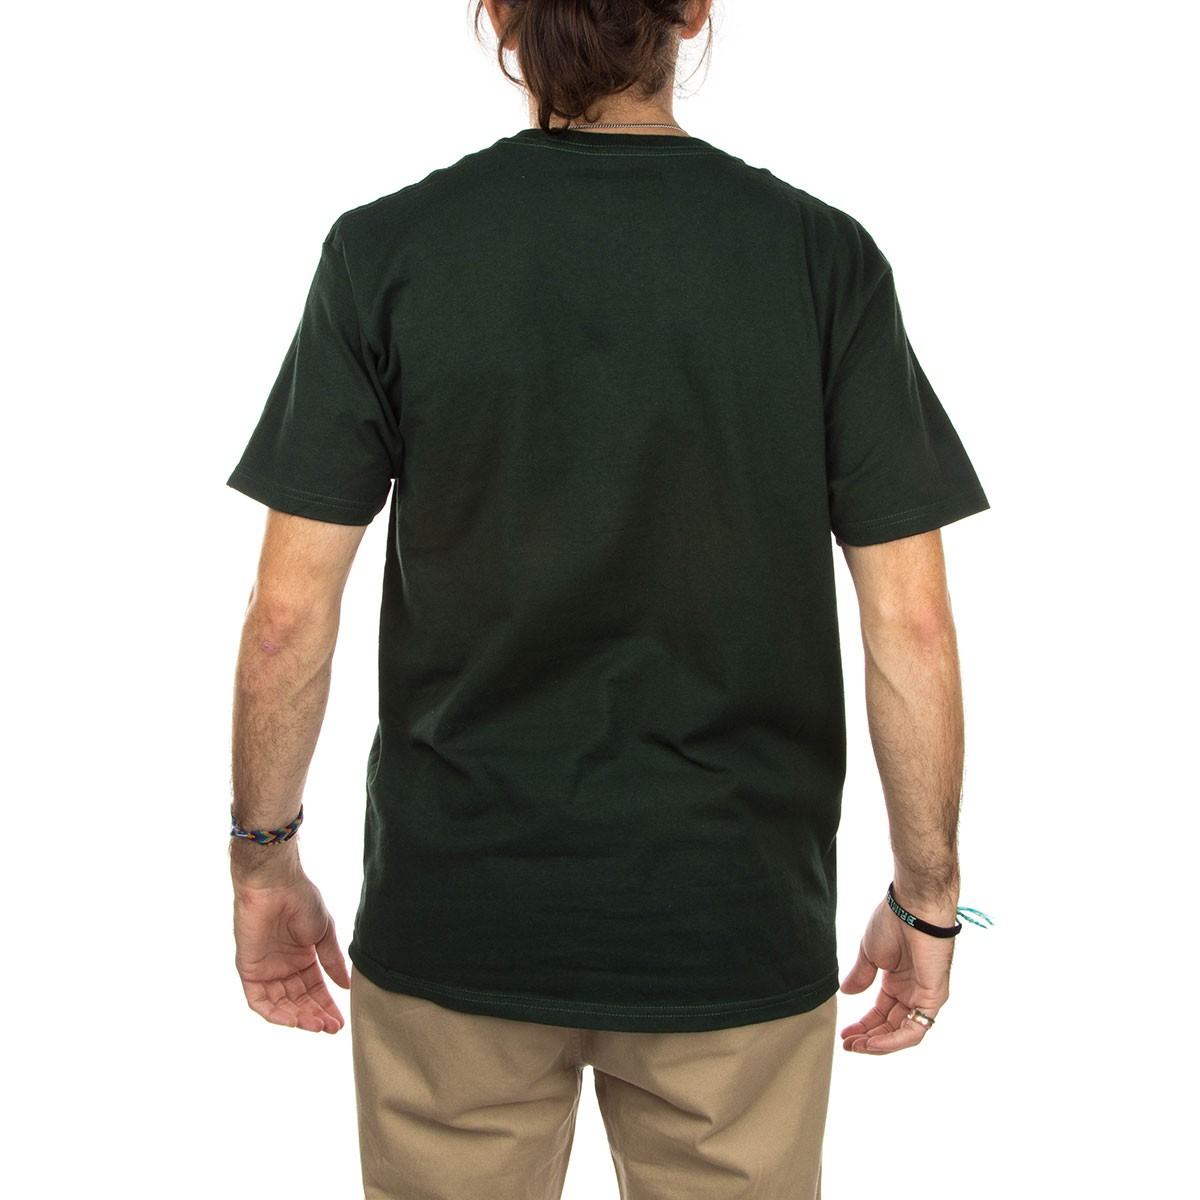 1b17cabbe4ce8b vans-classic-t-shirt-forest-medieval-blue-md-2.1506915316.jpg